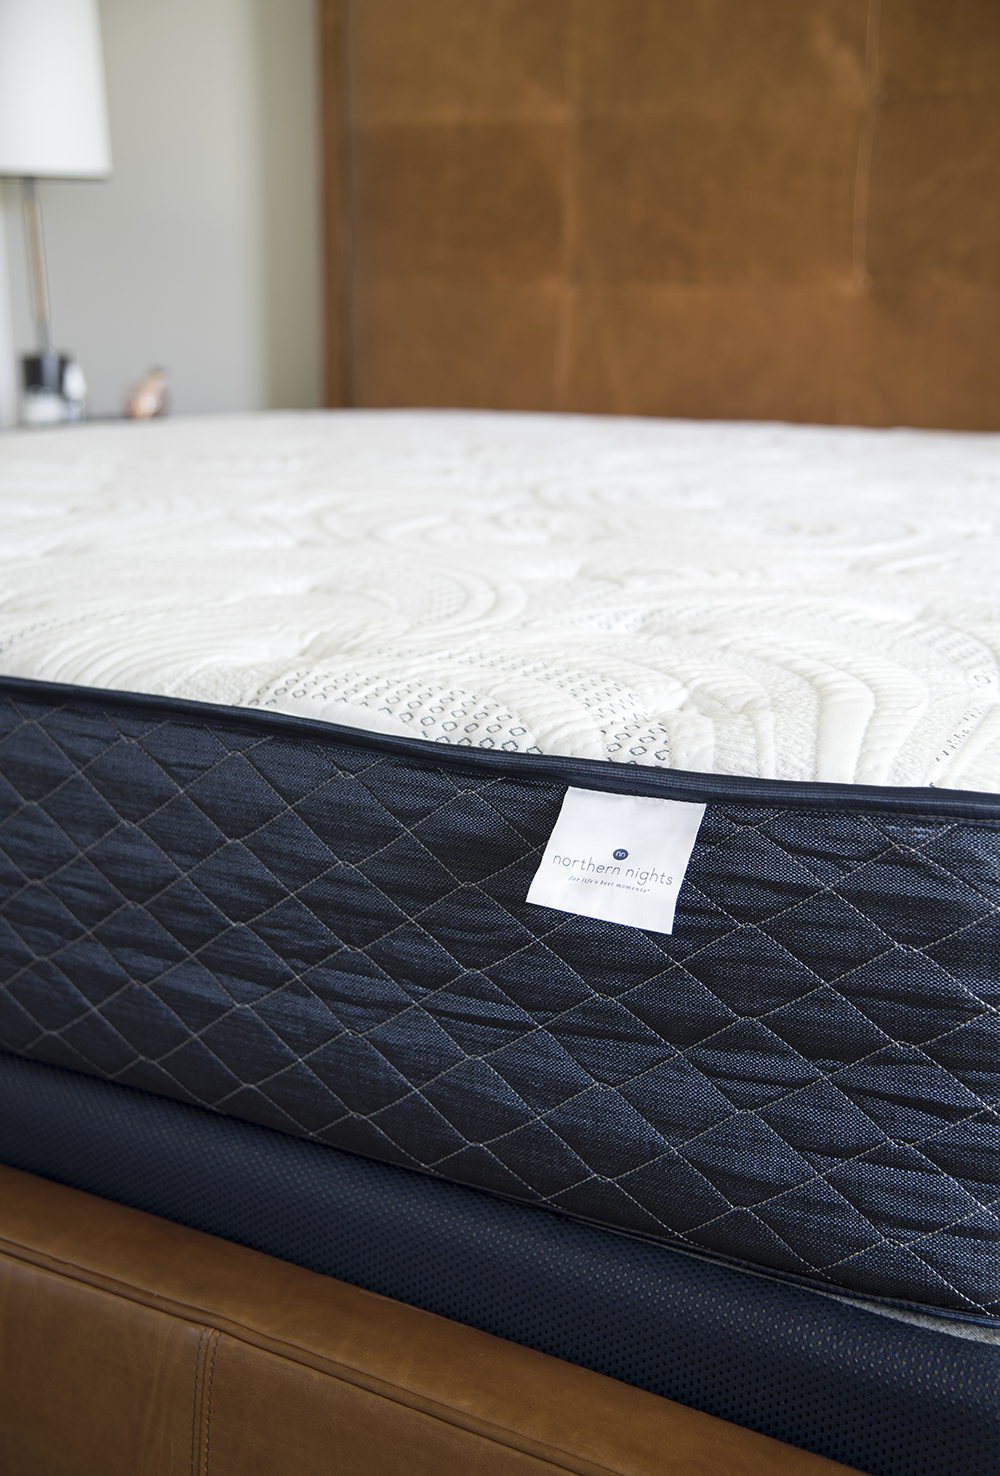 Upgrading Our Mattress - roomfortuesday.com